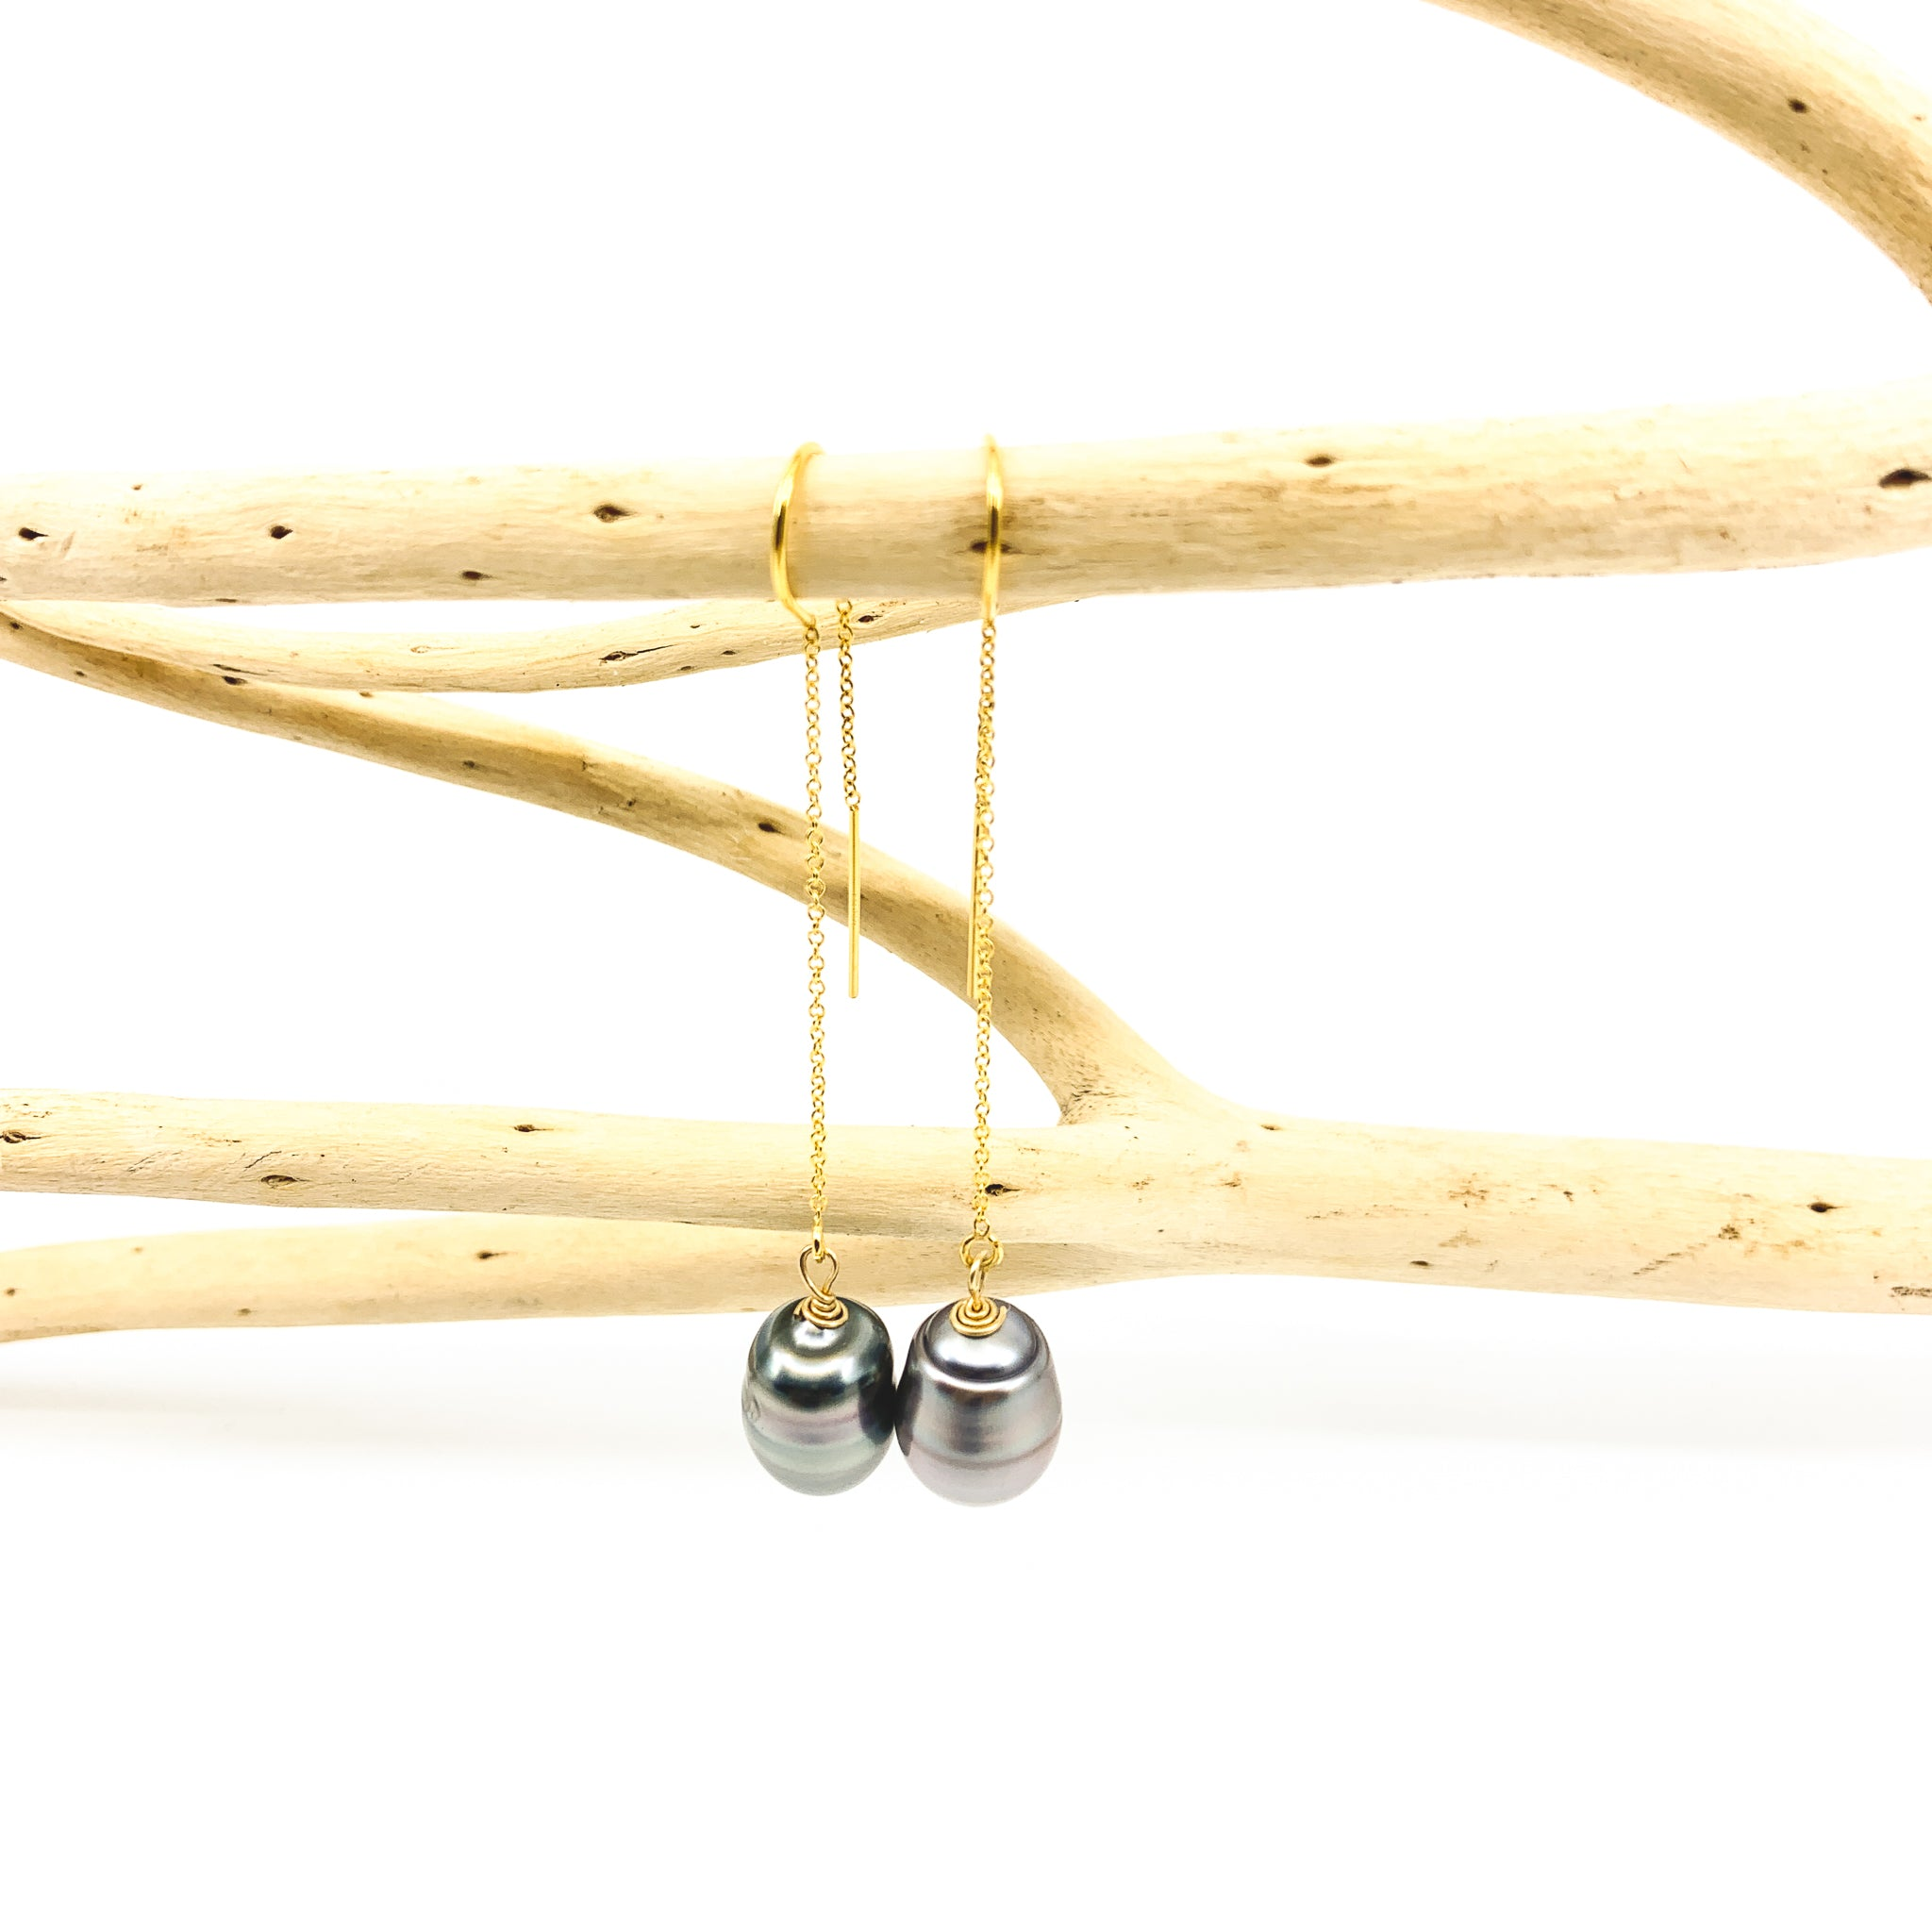 tahitian pearls threader style gold fill earrings by eve black jewelry made in Hawaii